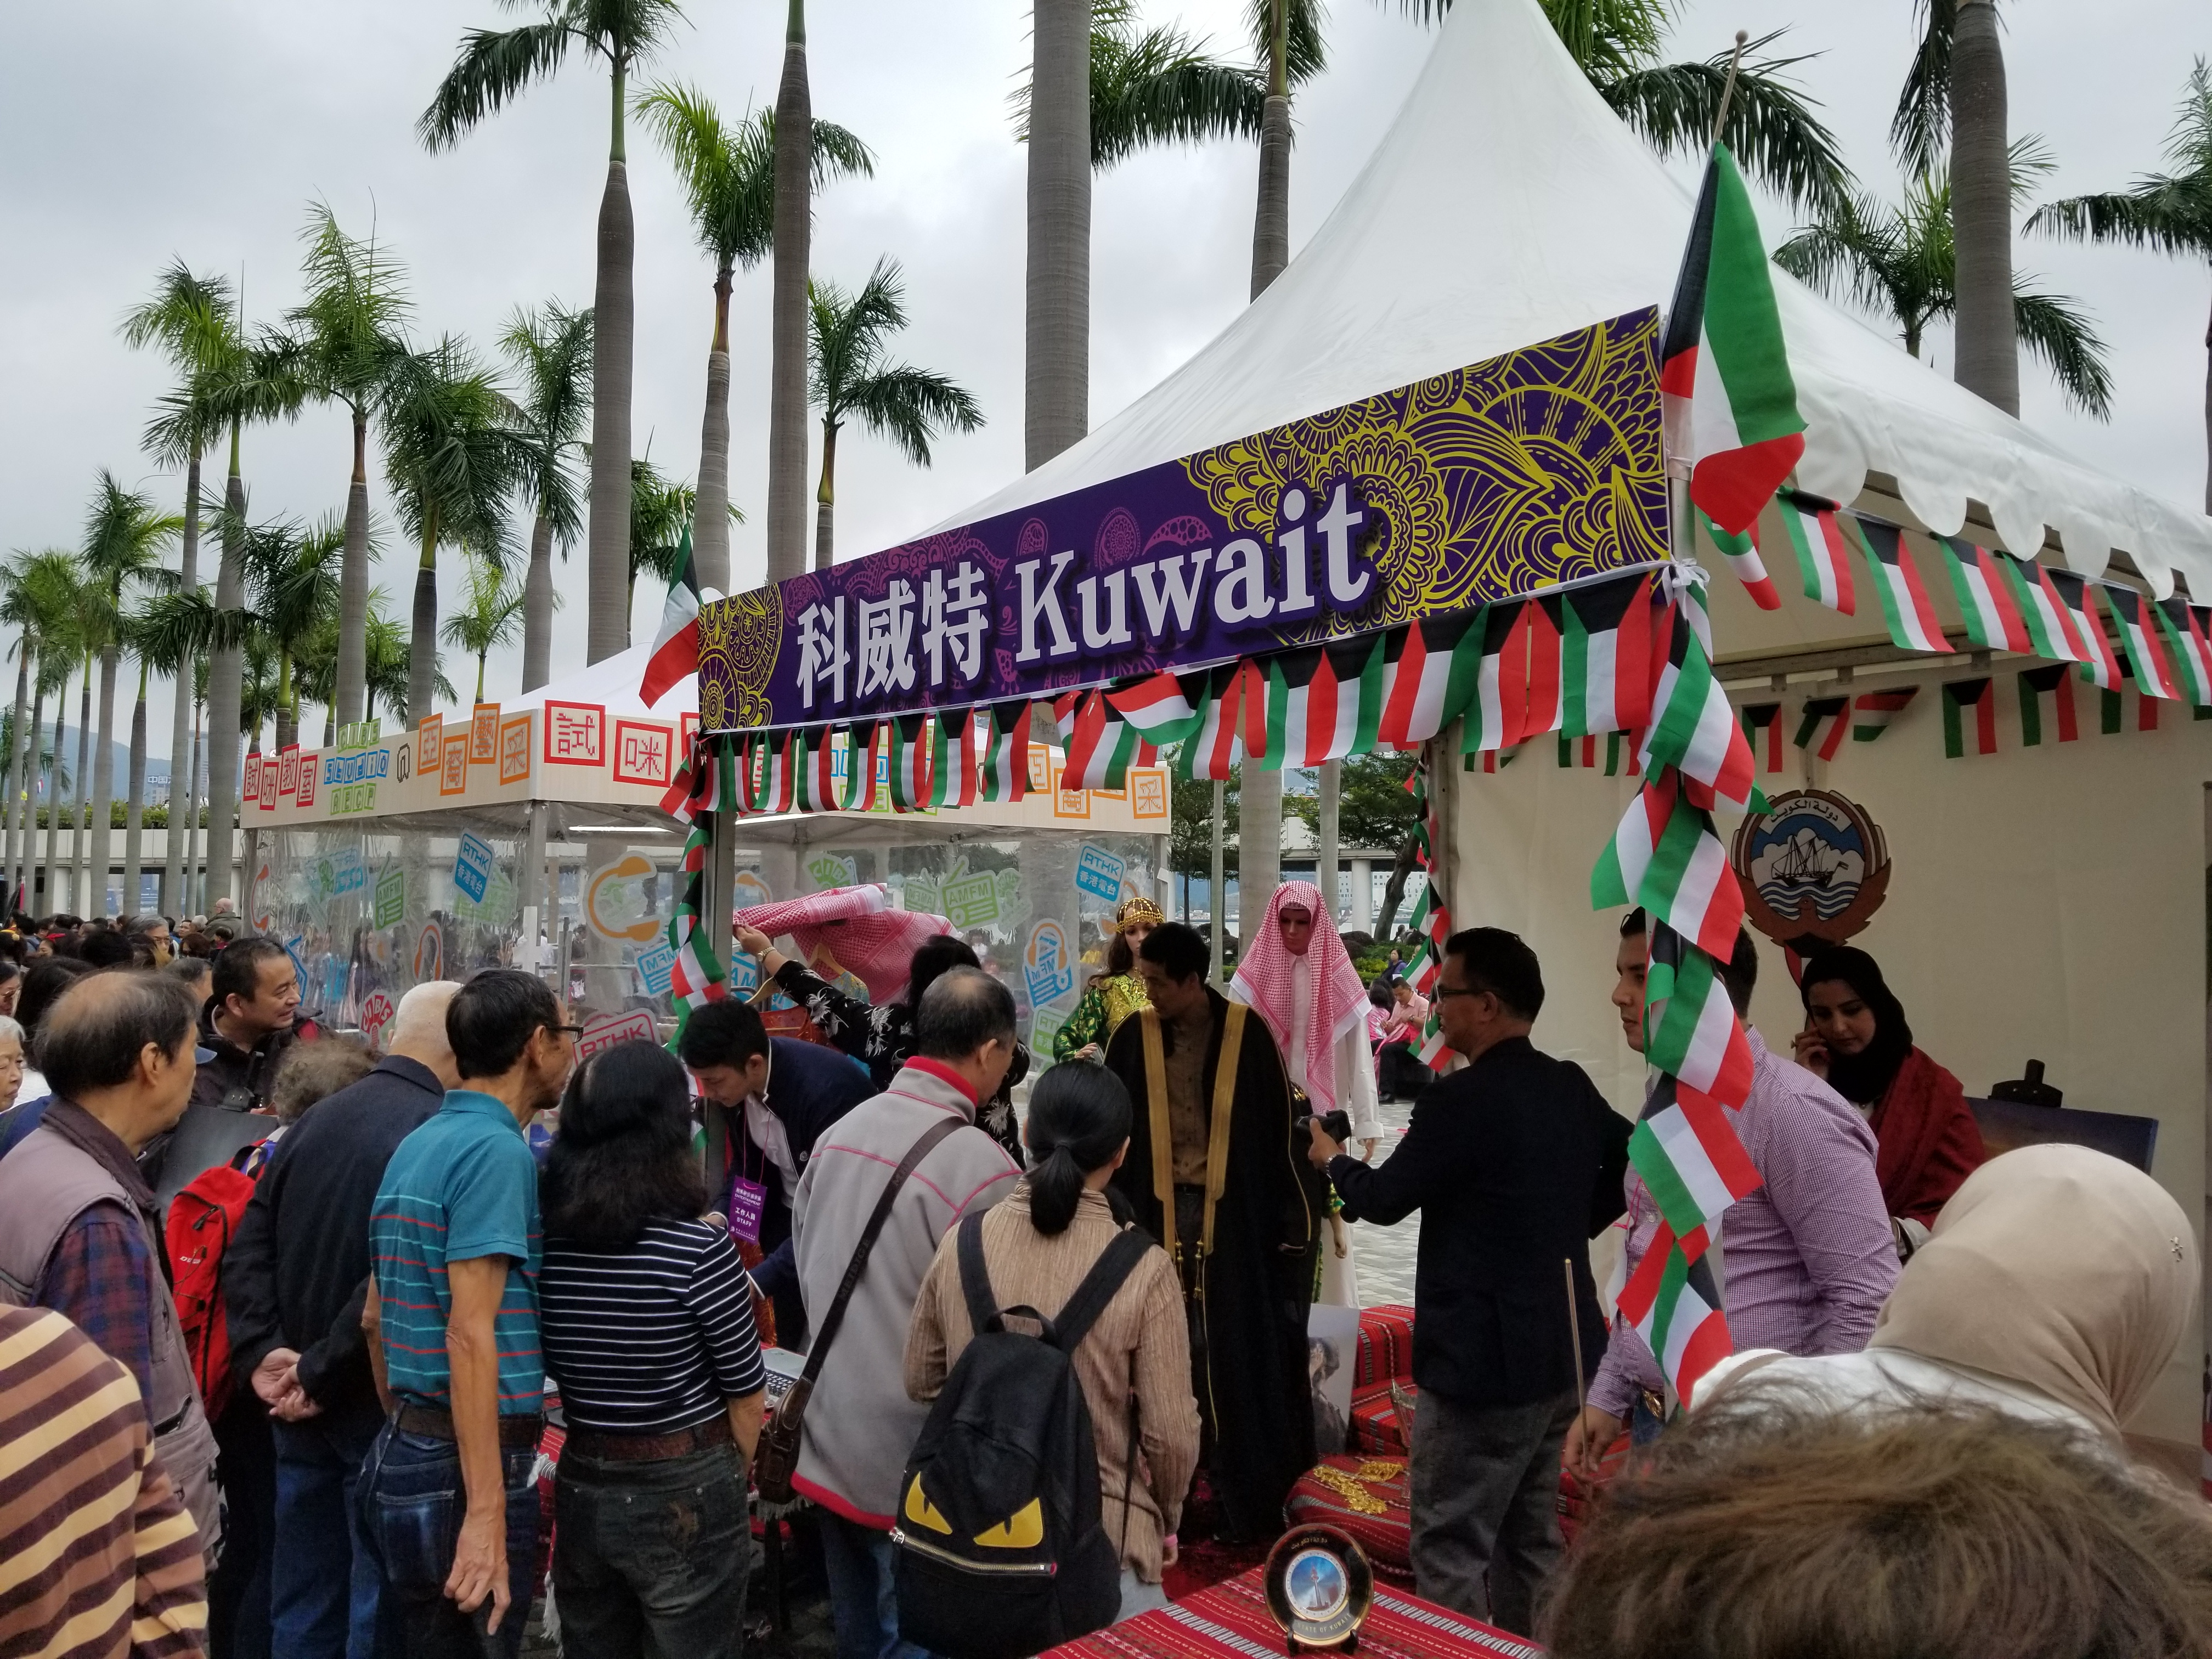 Consulate General of The State of Kuwait in Hong Kong